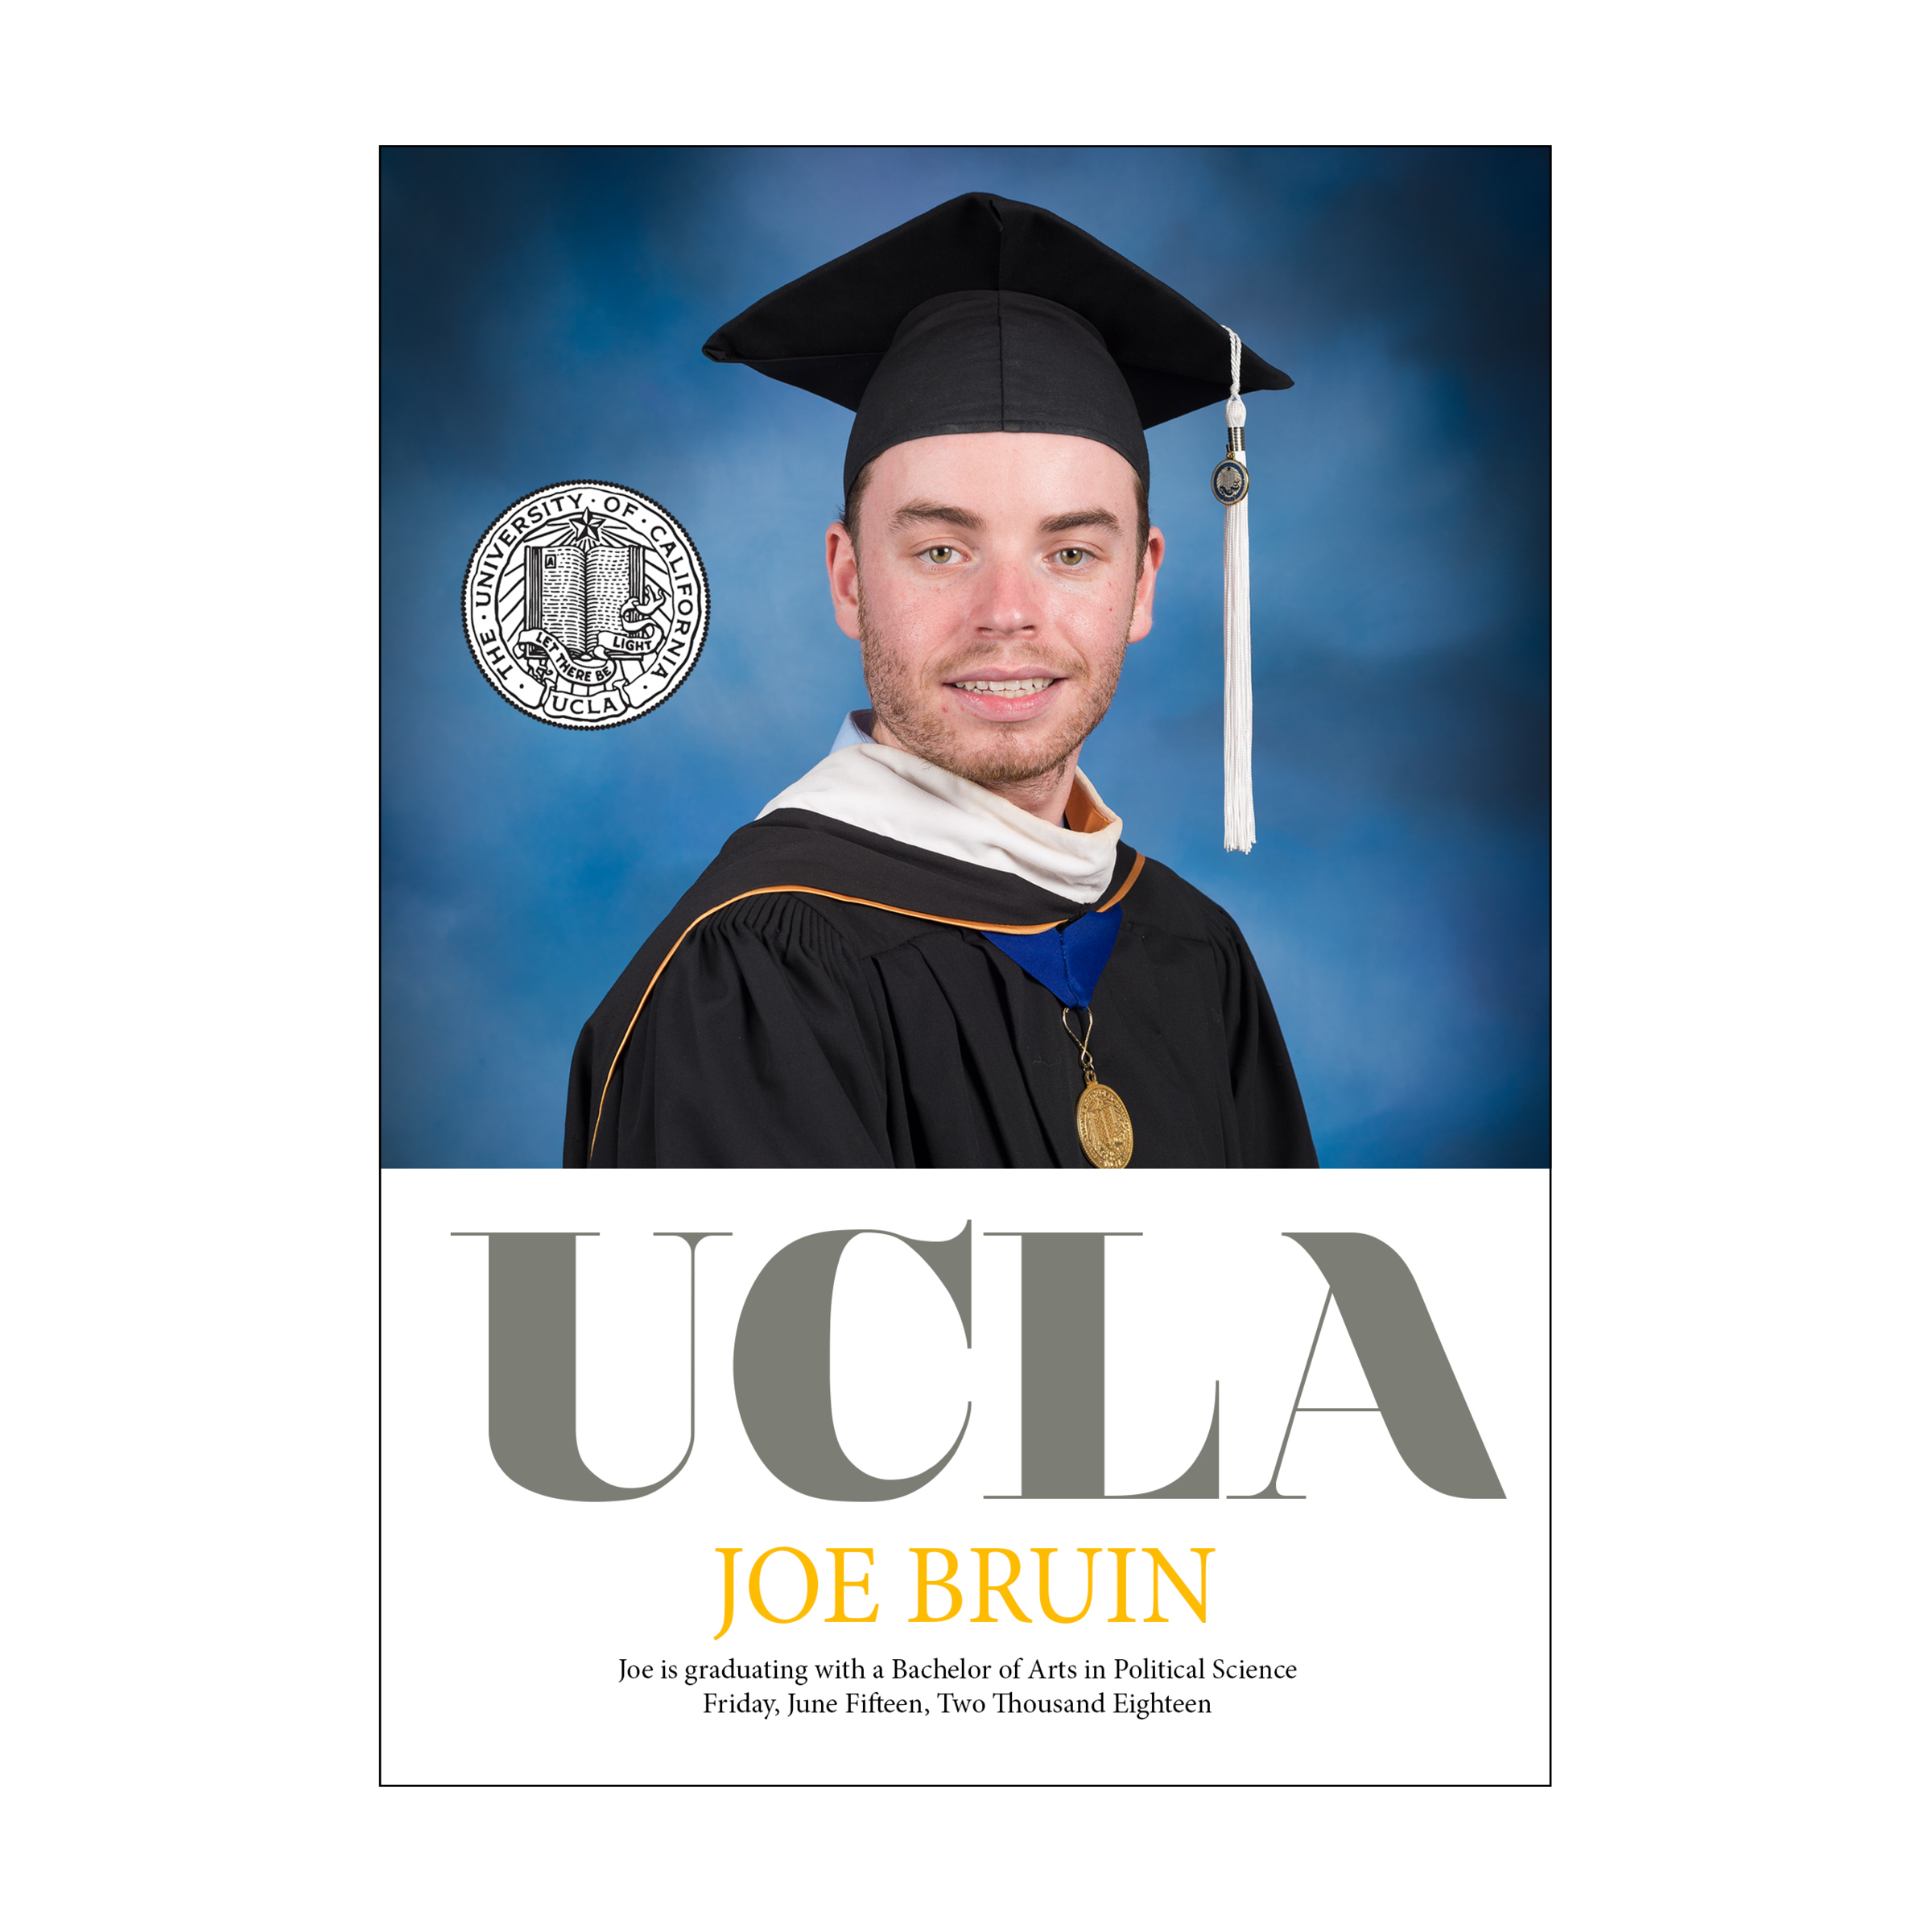 UCLA Standout Graduation Announcement